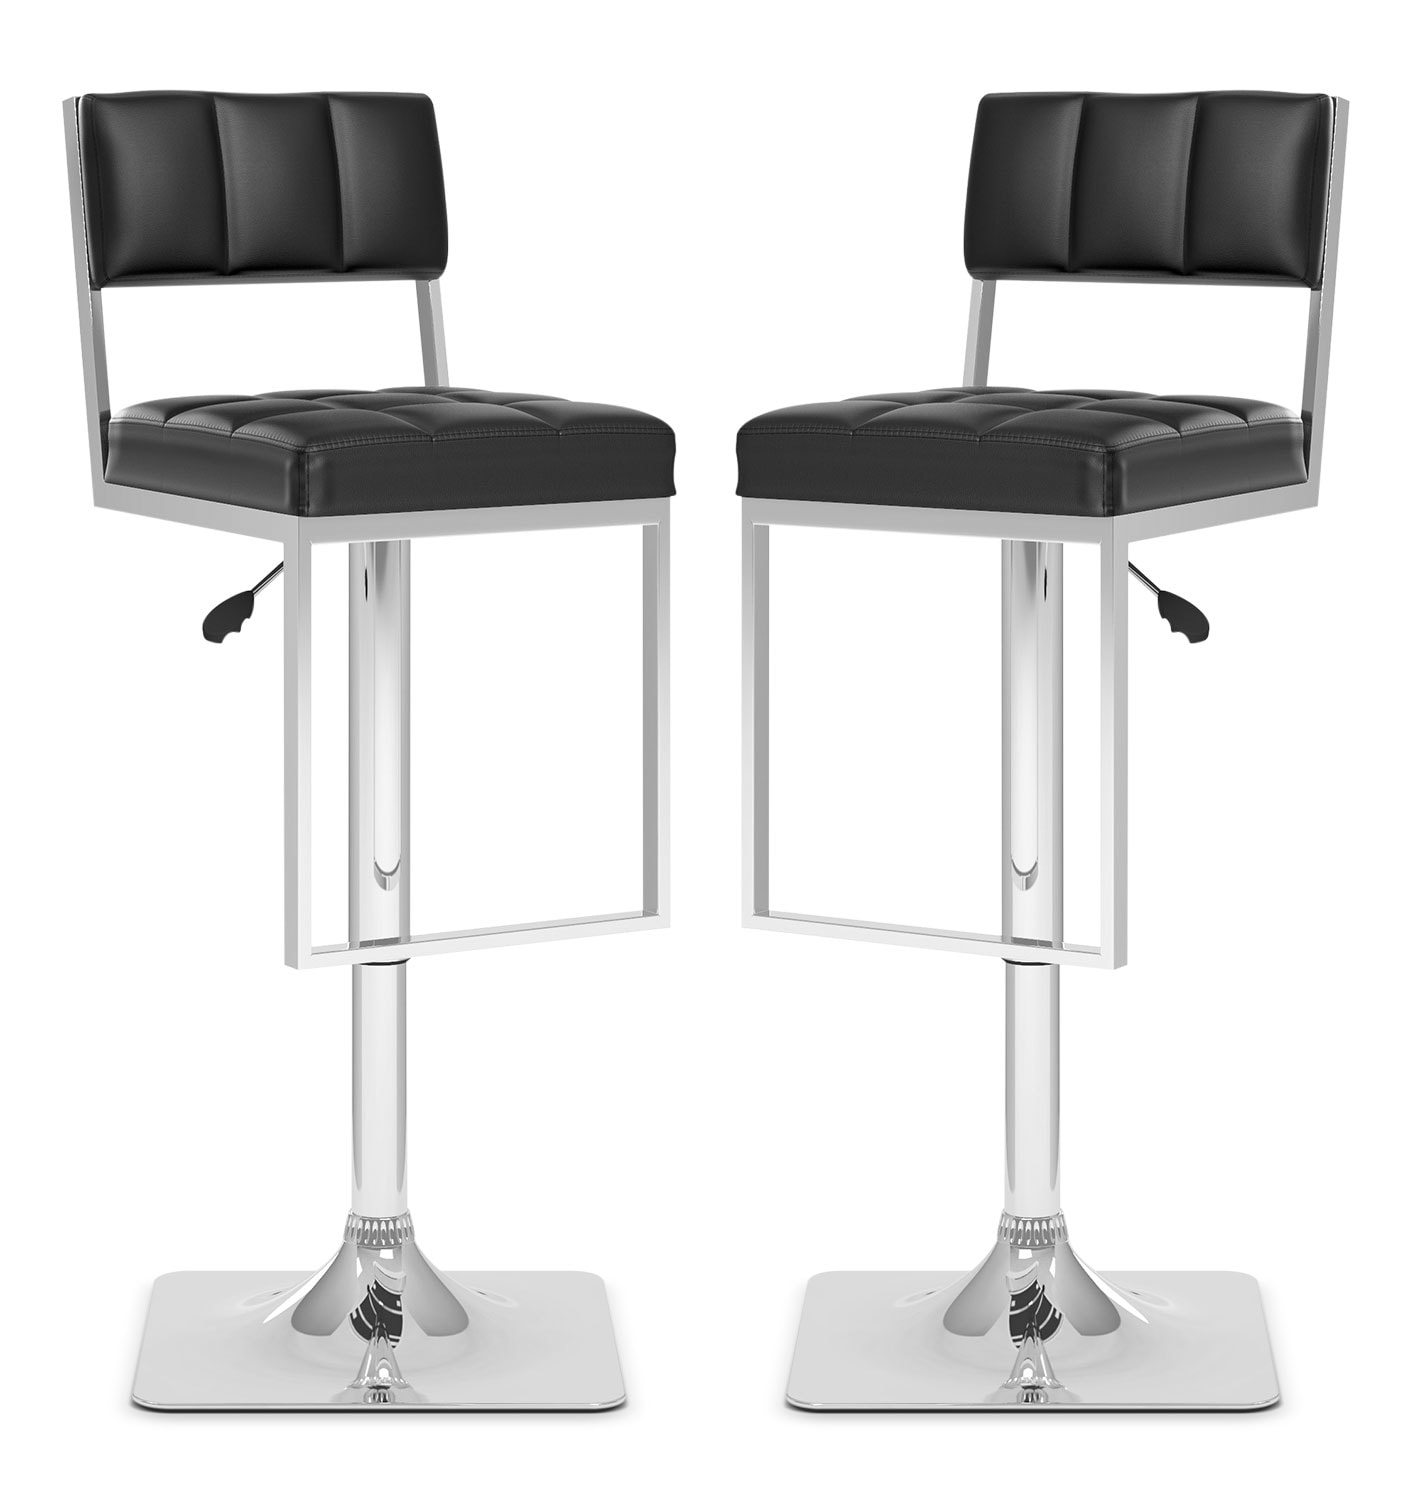 CorLiving Square-Tufted Wide Adjustable Bar Stool, Set of 2 – Black